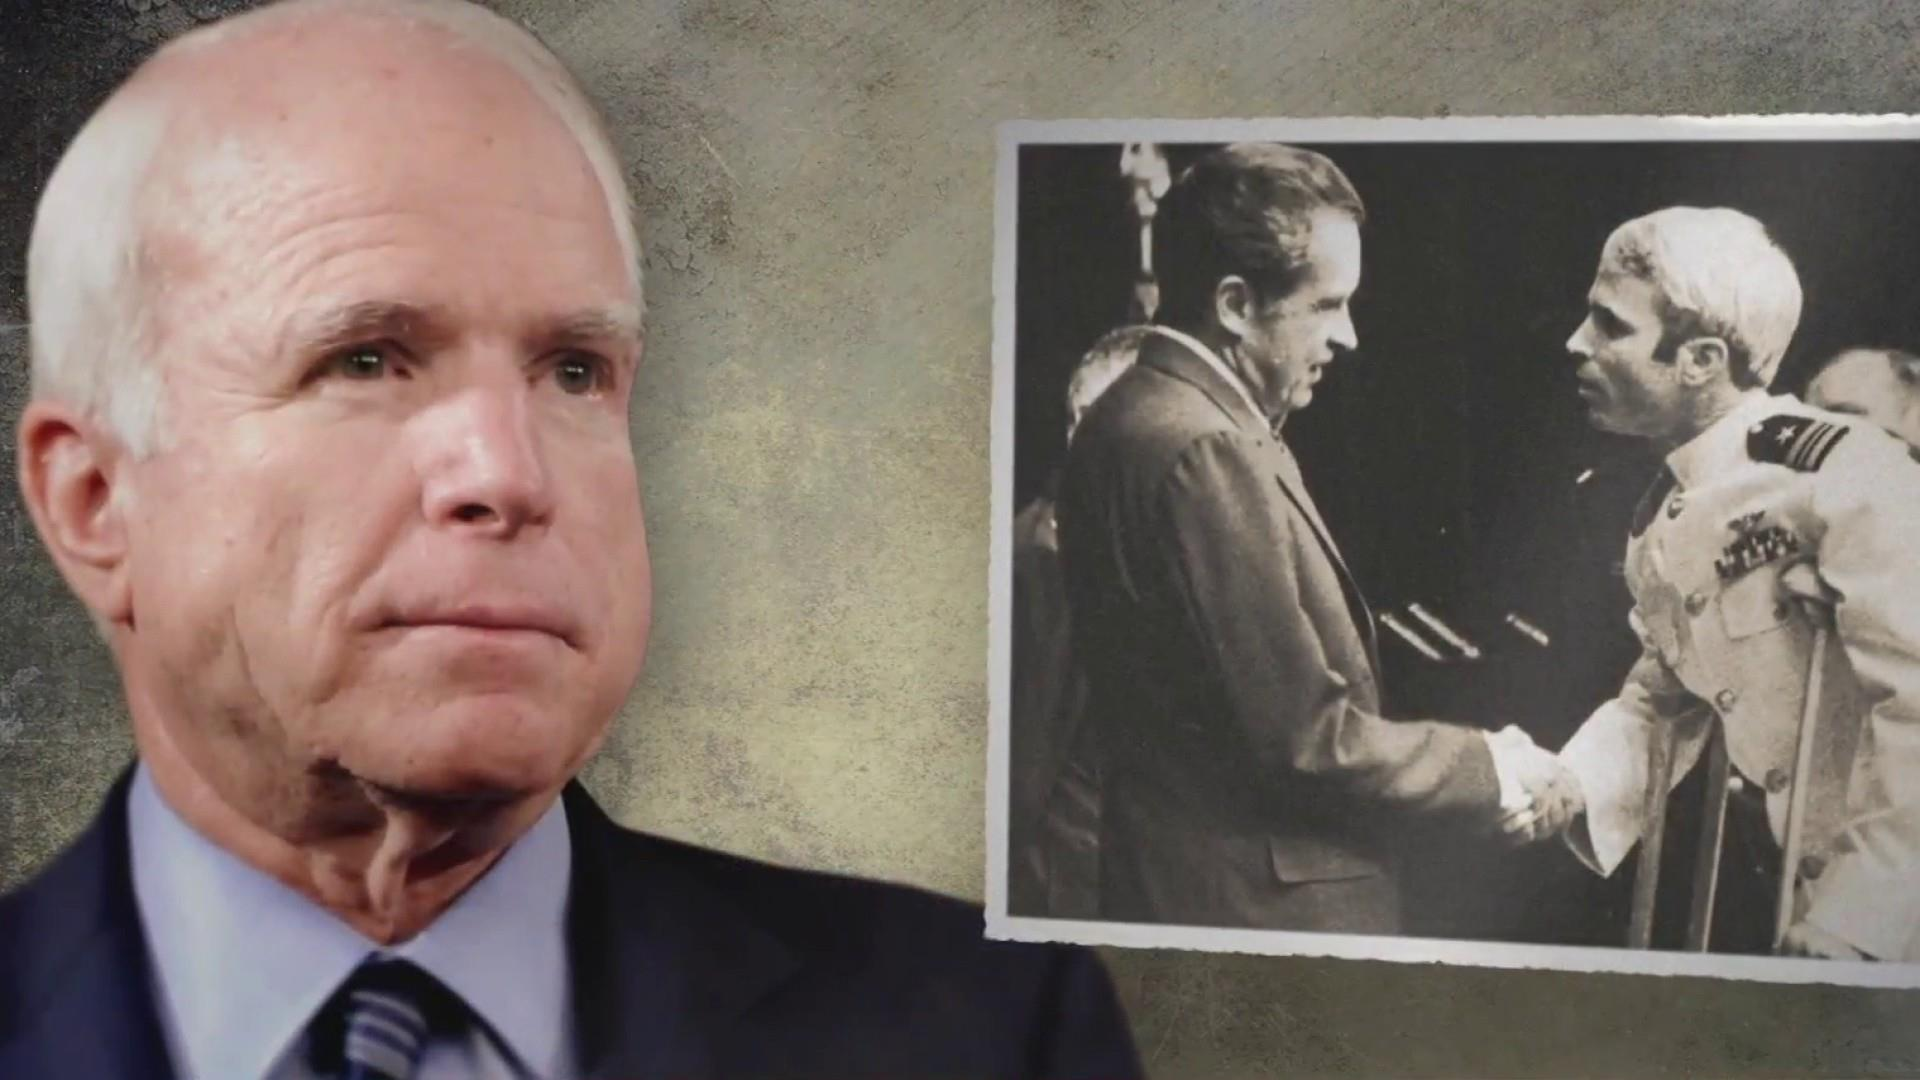 Lawmaker anger builds after White House aide mocks 'dying' McCain